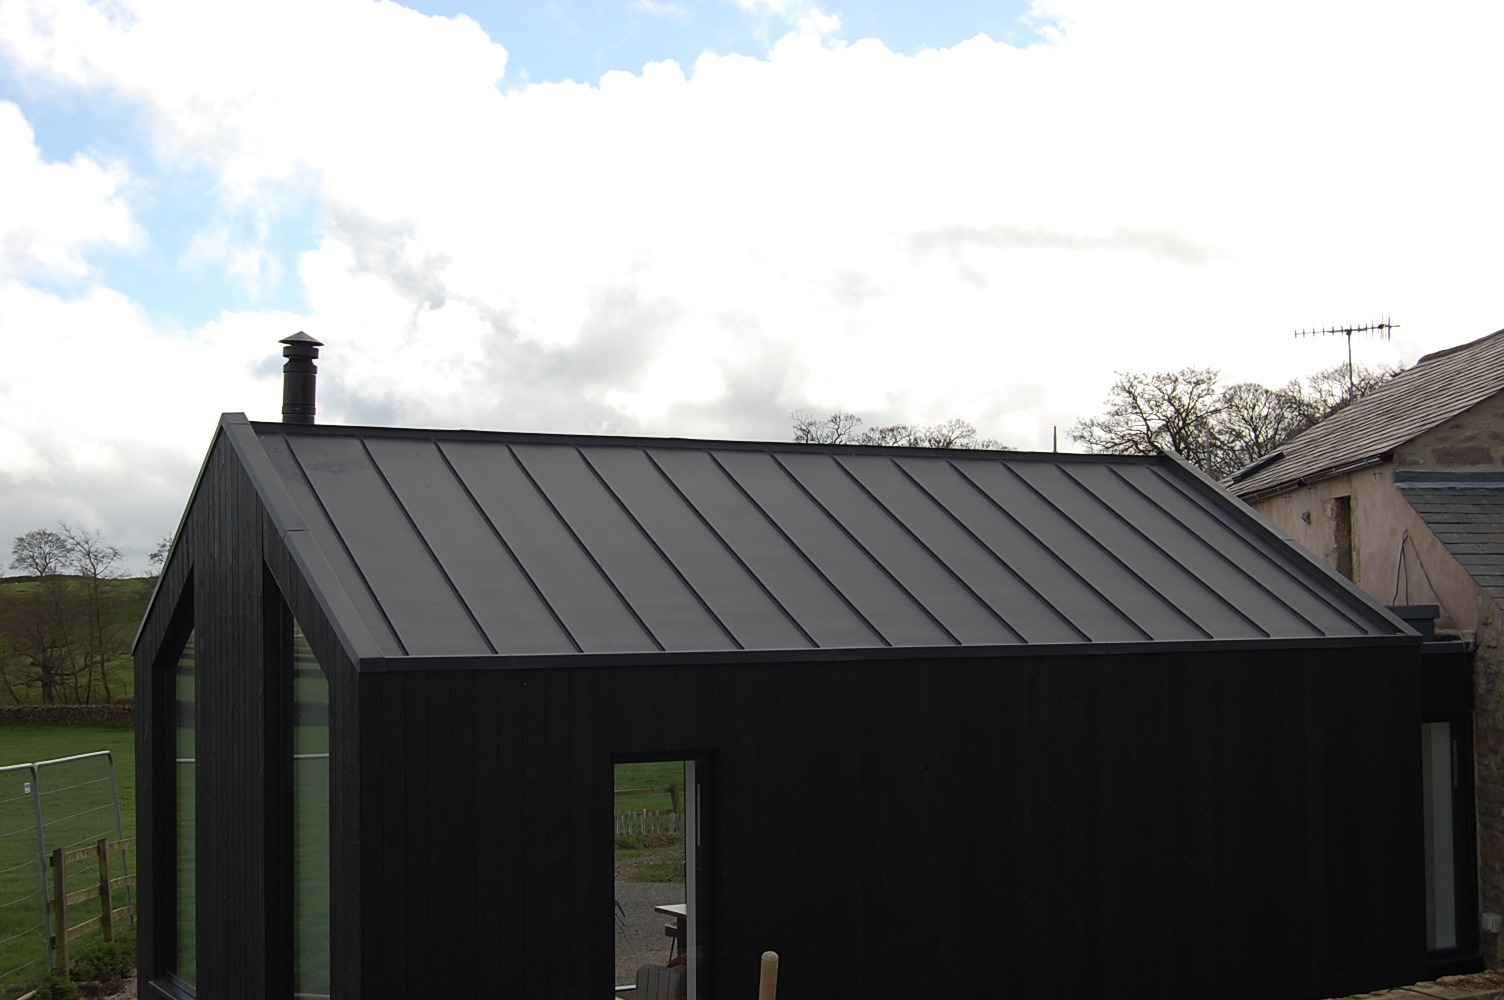 Zinc Roofers Anthra Zinc Roofing Roofers York Roof